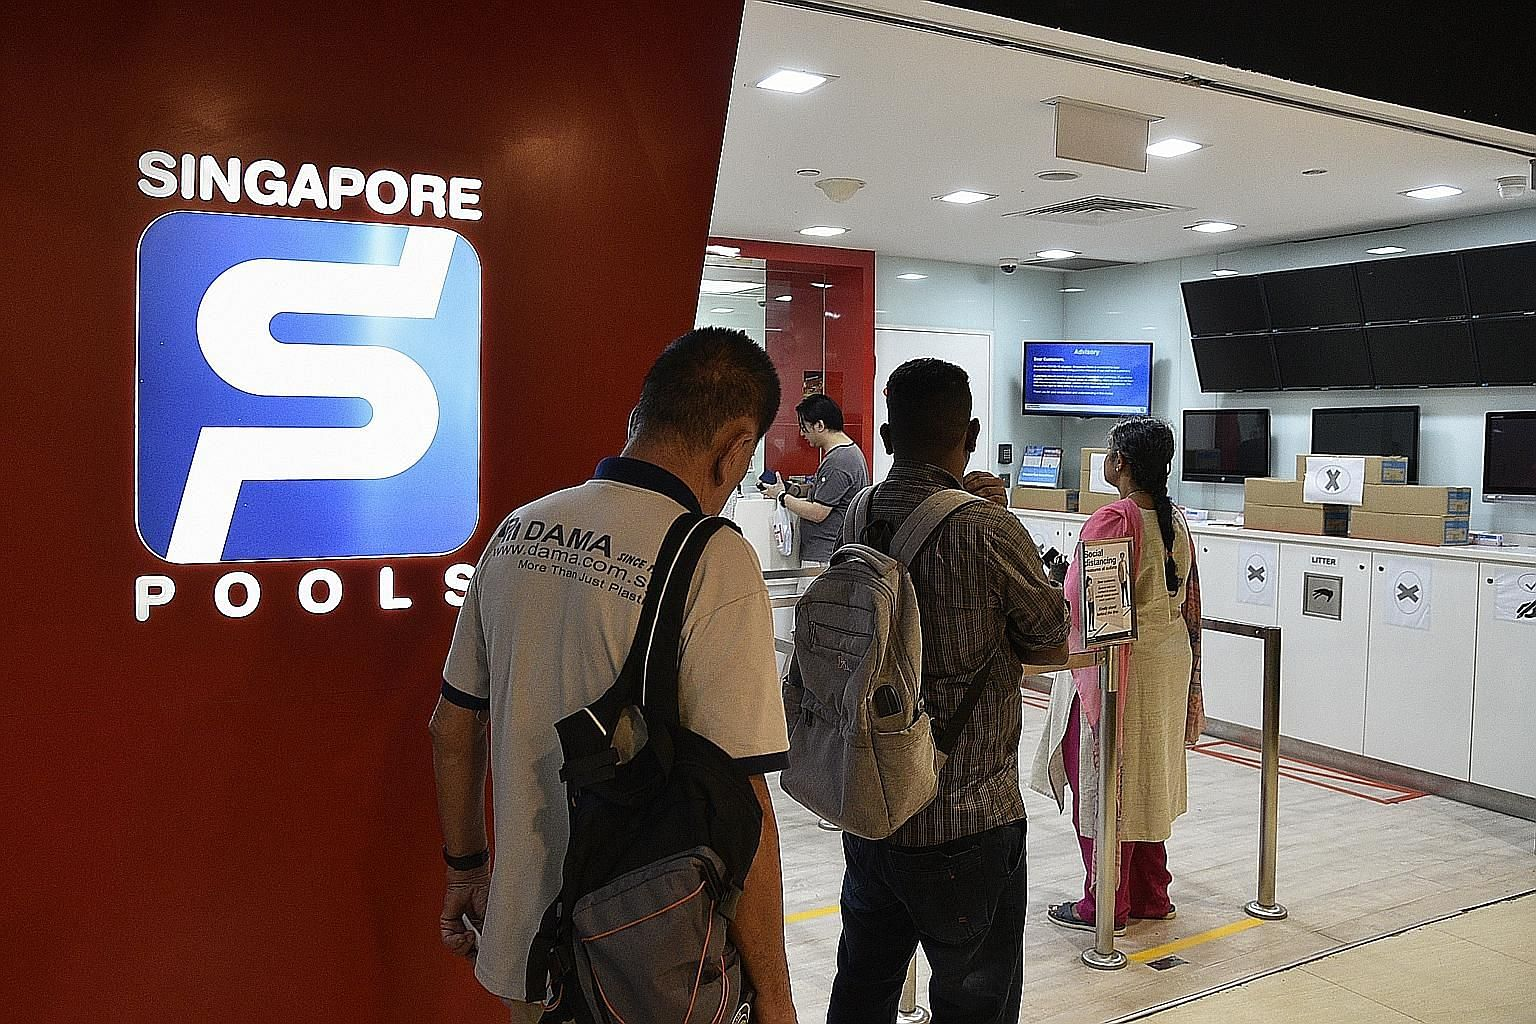 Though Singapore Pools is suspending betting for a month, which could affect sectors that depend on donations and grants from the Tote Board, some charities are confident their operations will not be compromised.